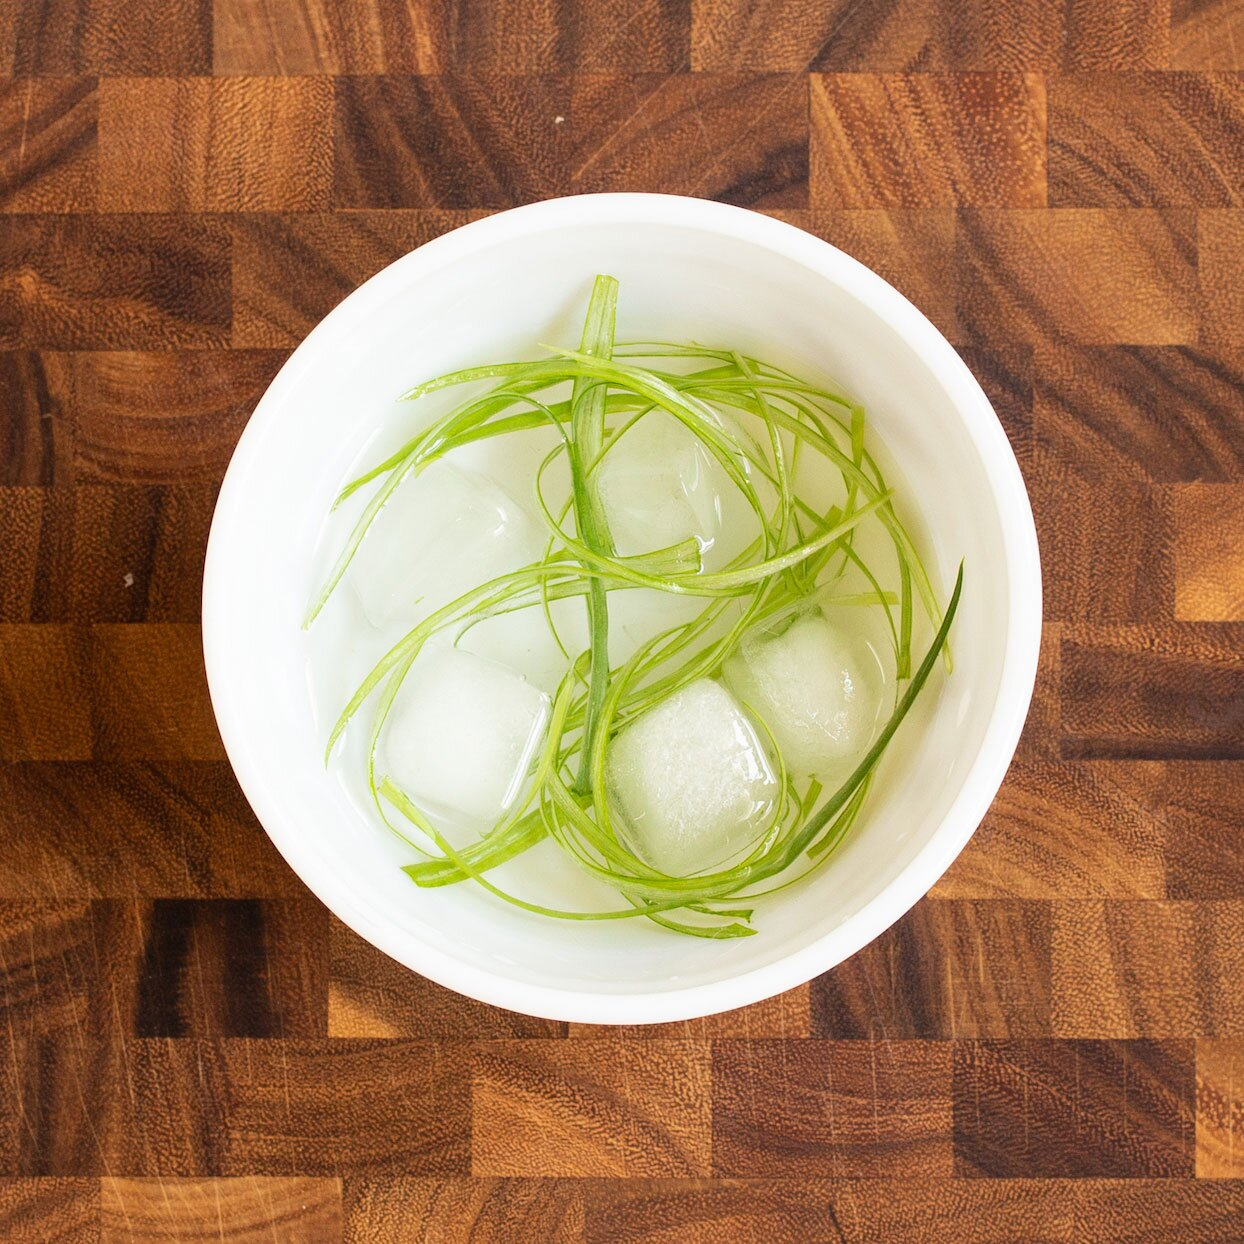 green onion curls in a bowl